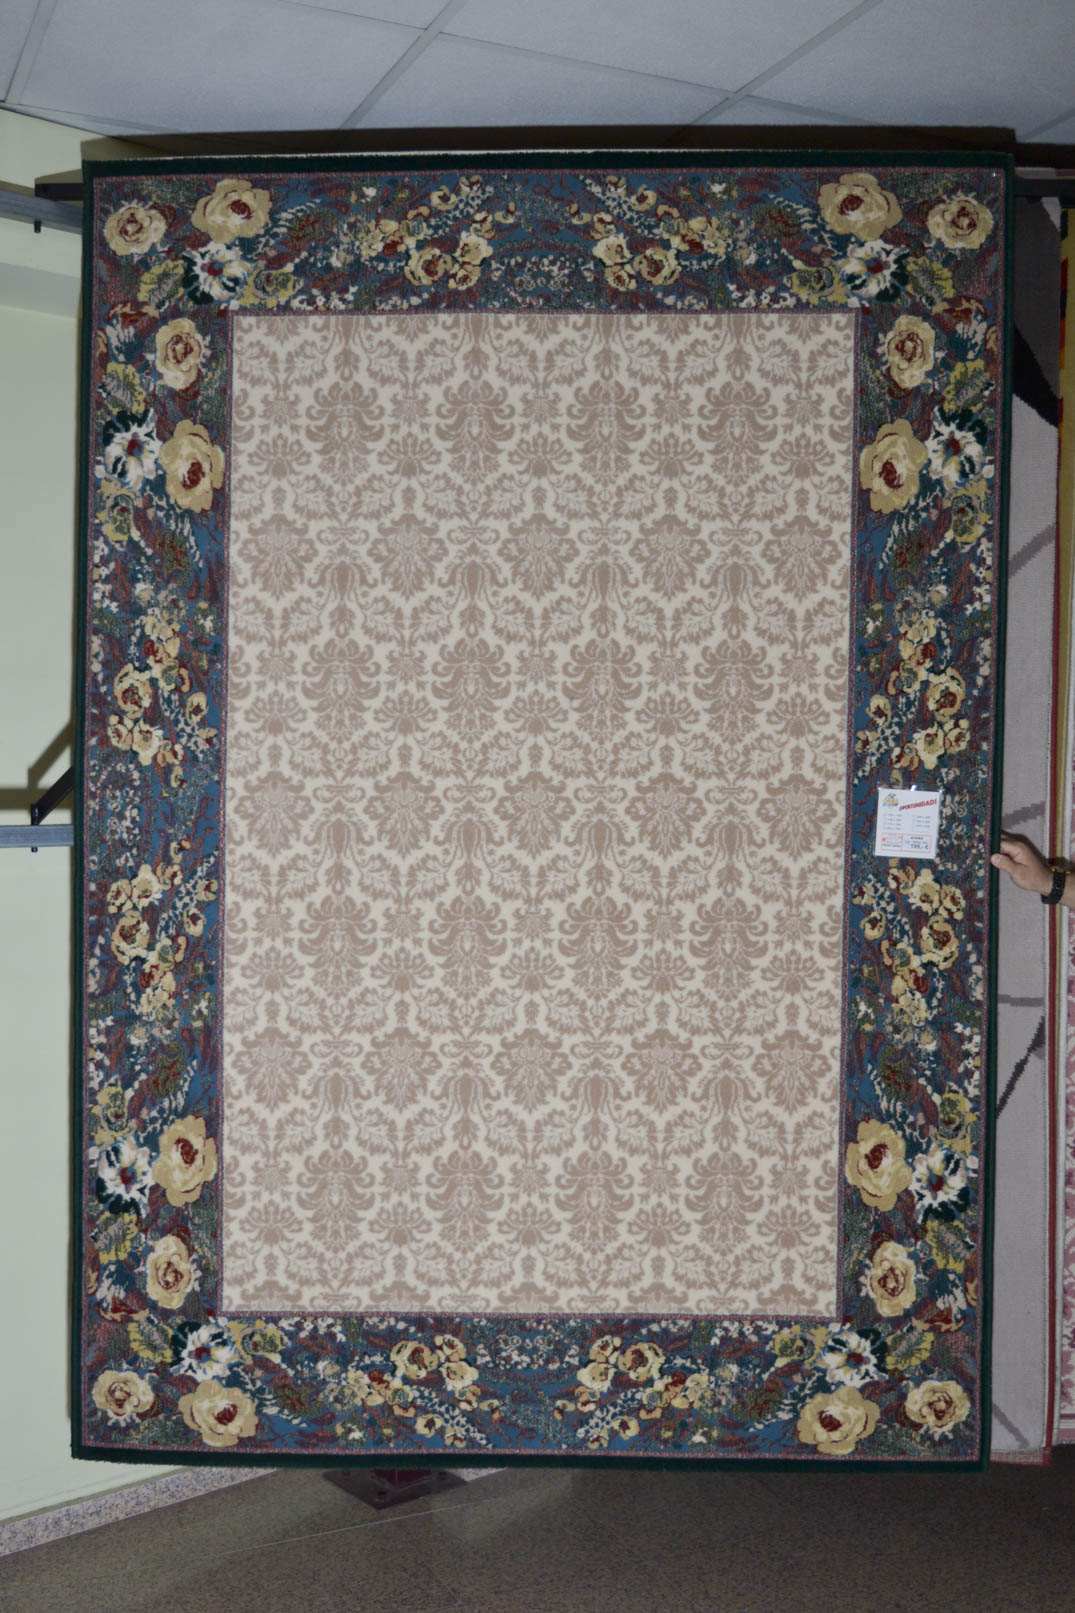 Alfombra outlet FS 0040 - Alfombras Nelo